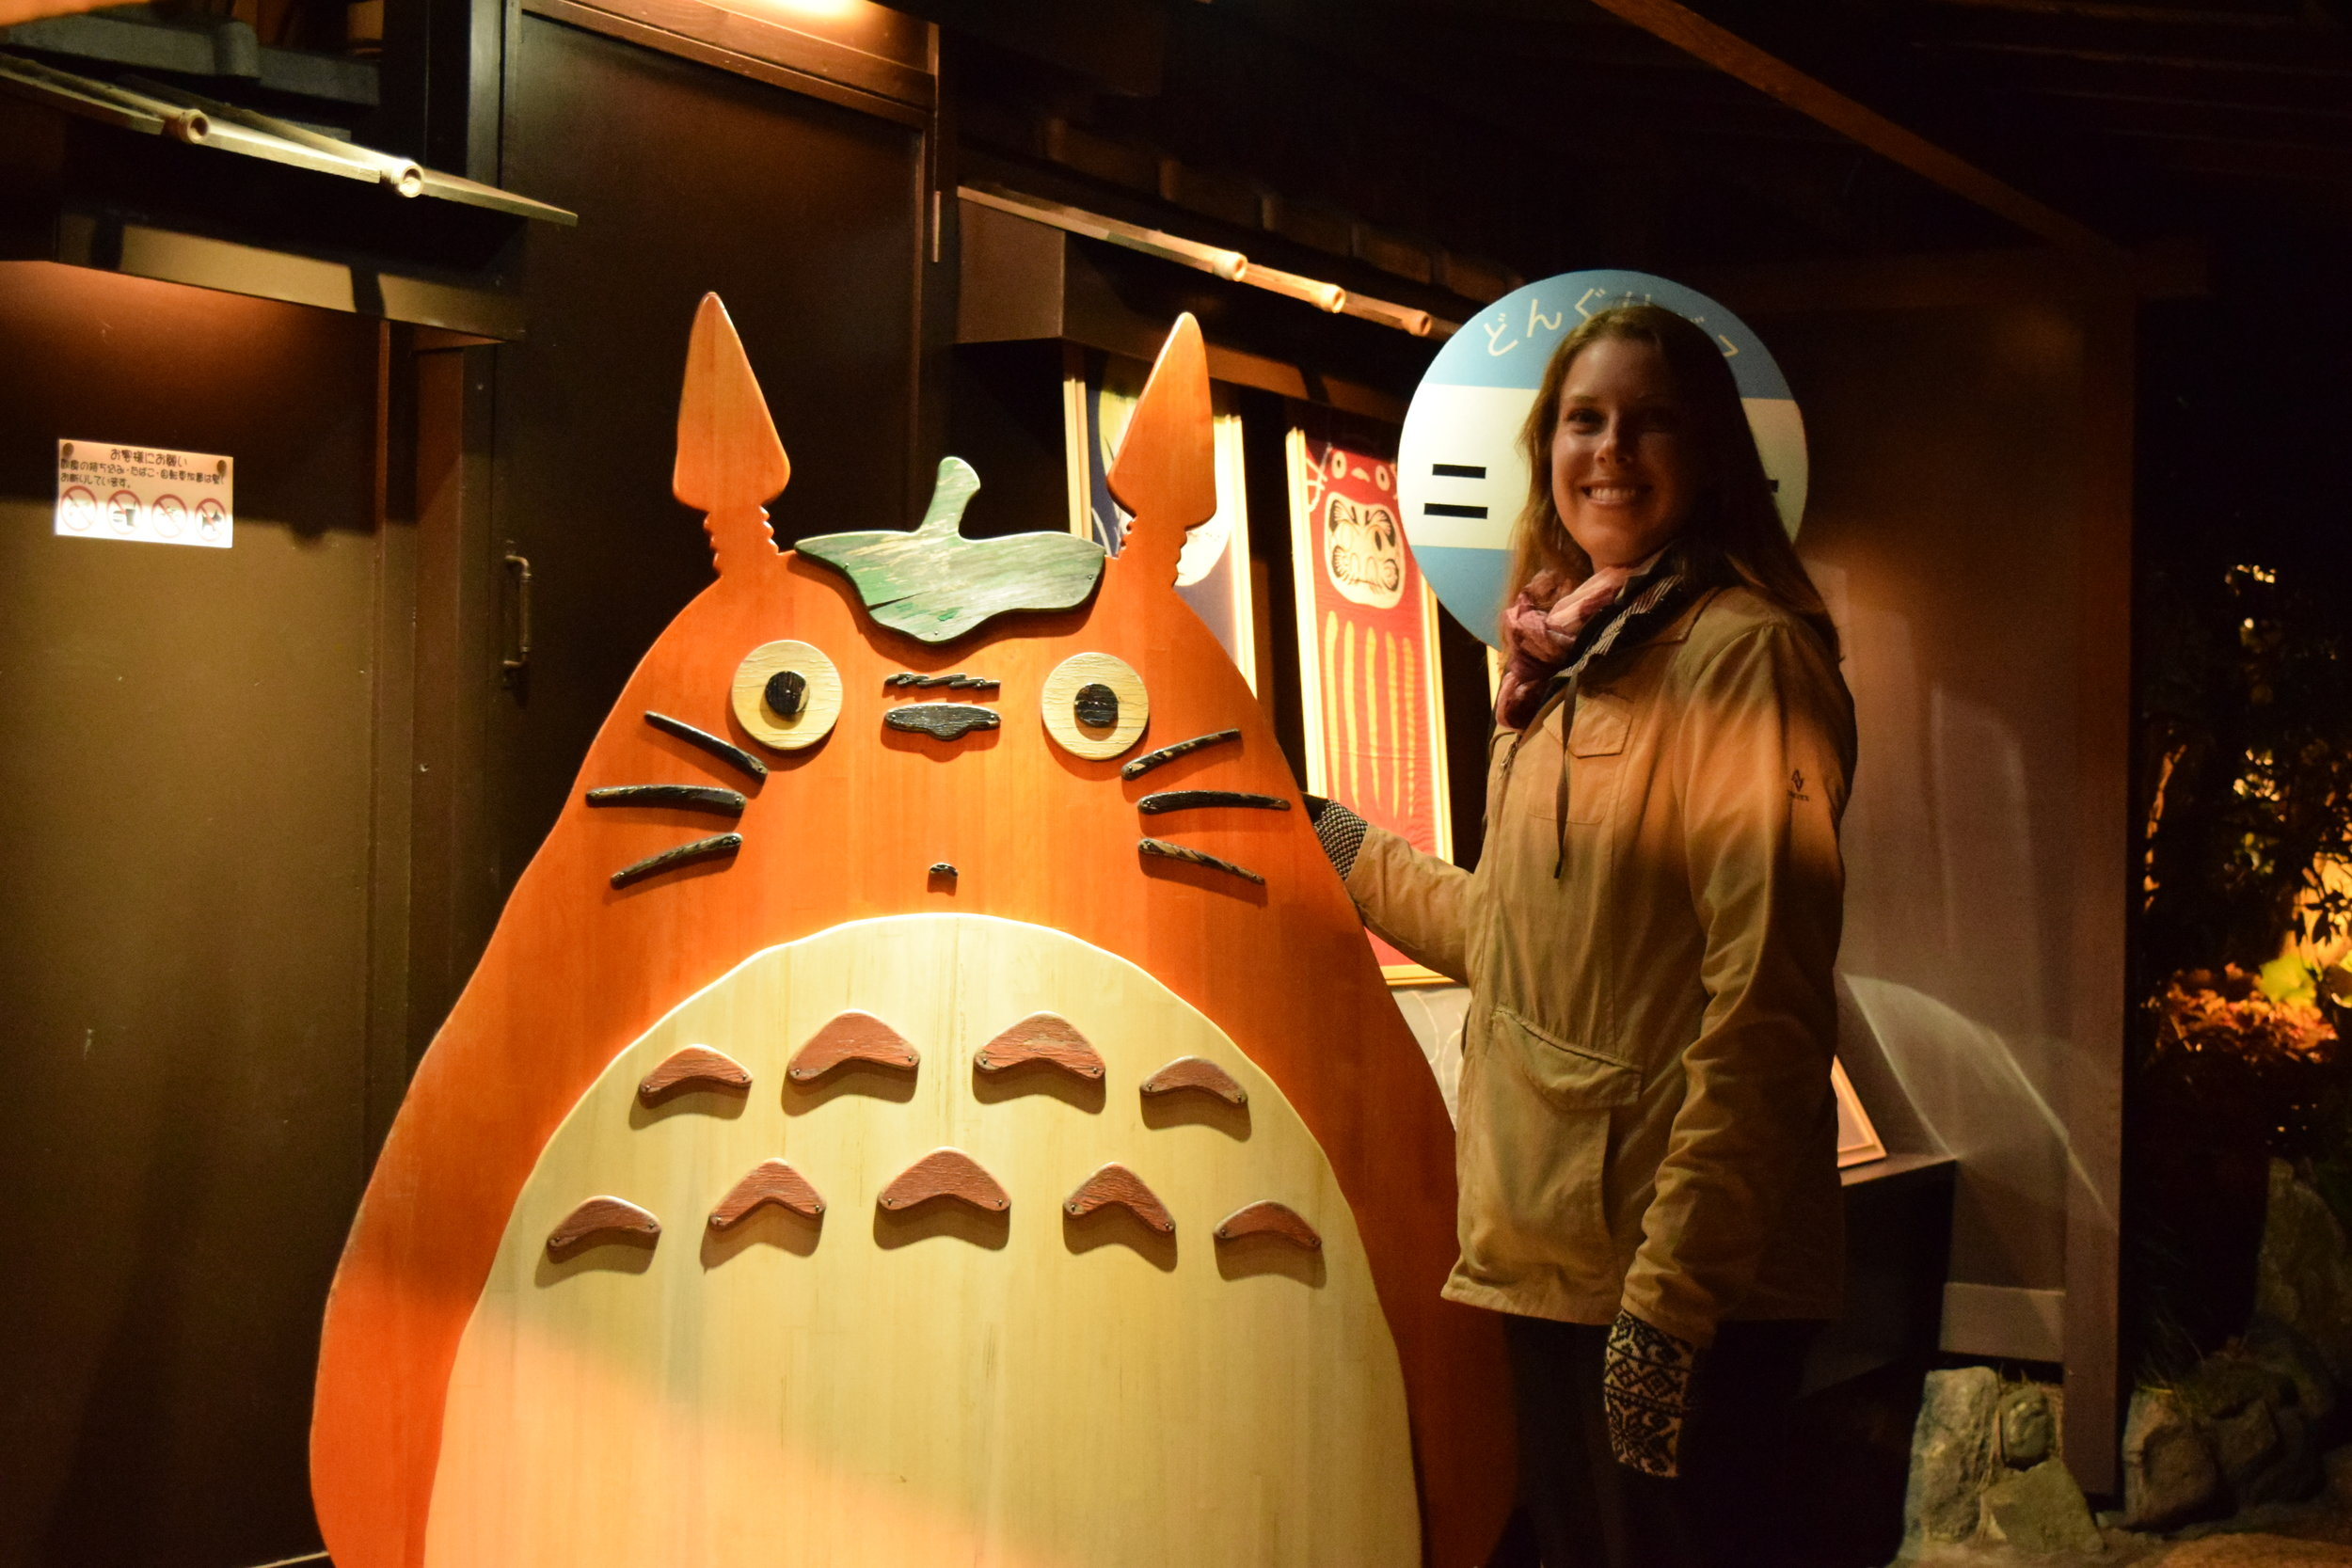 Obligatory photo with Totoro!